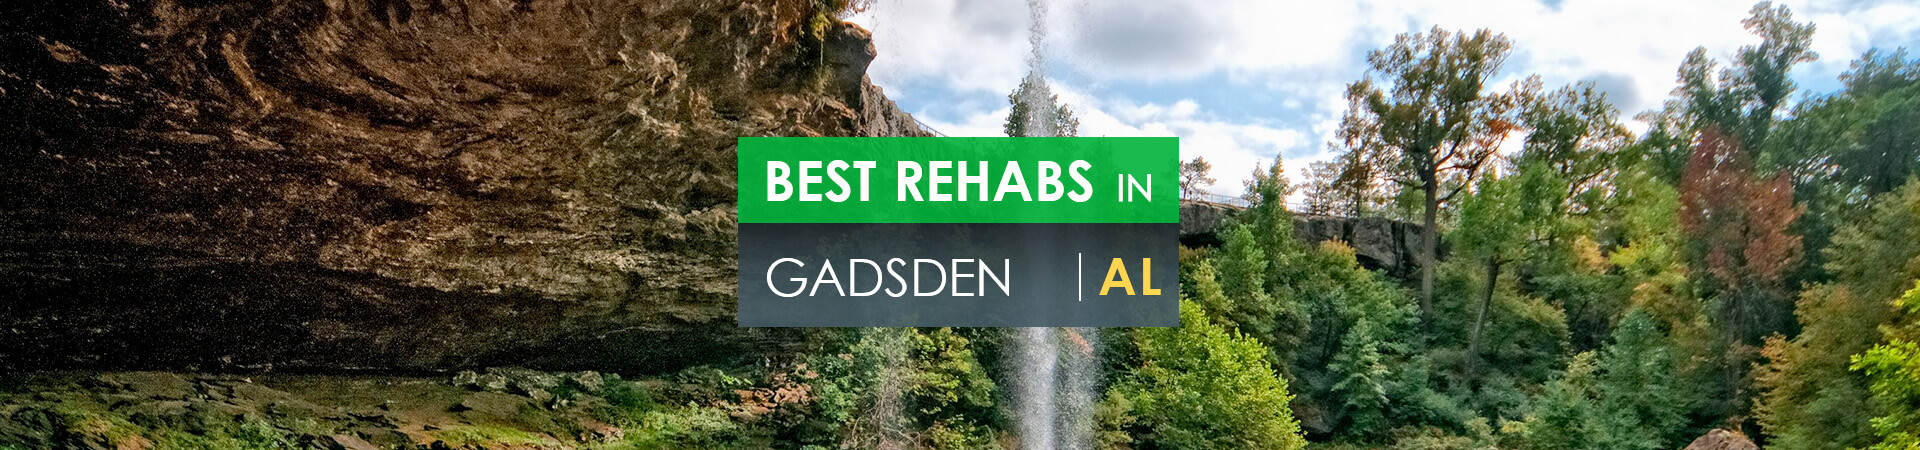 Best rehabs in Gadsden, AL